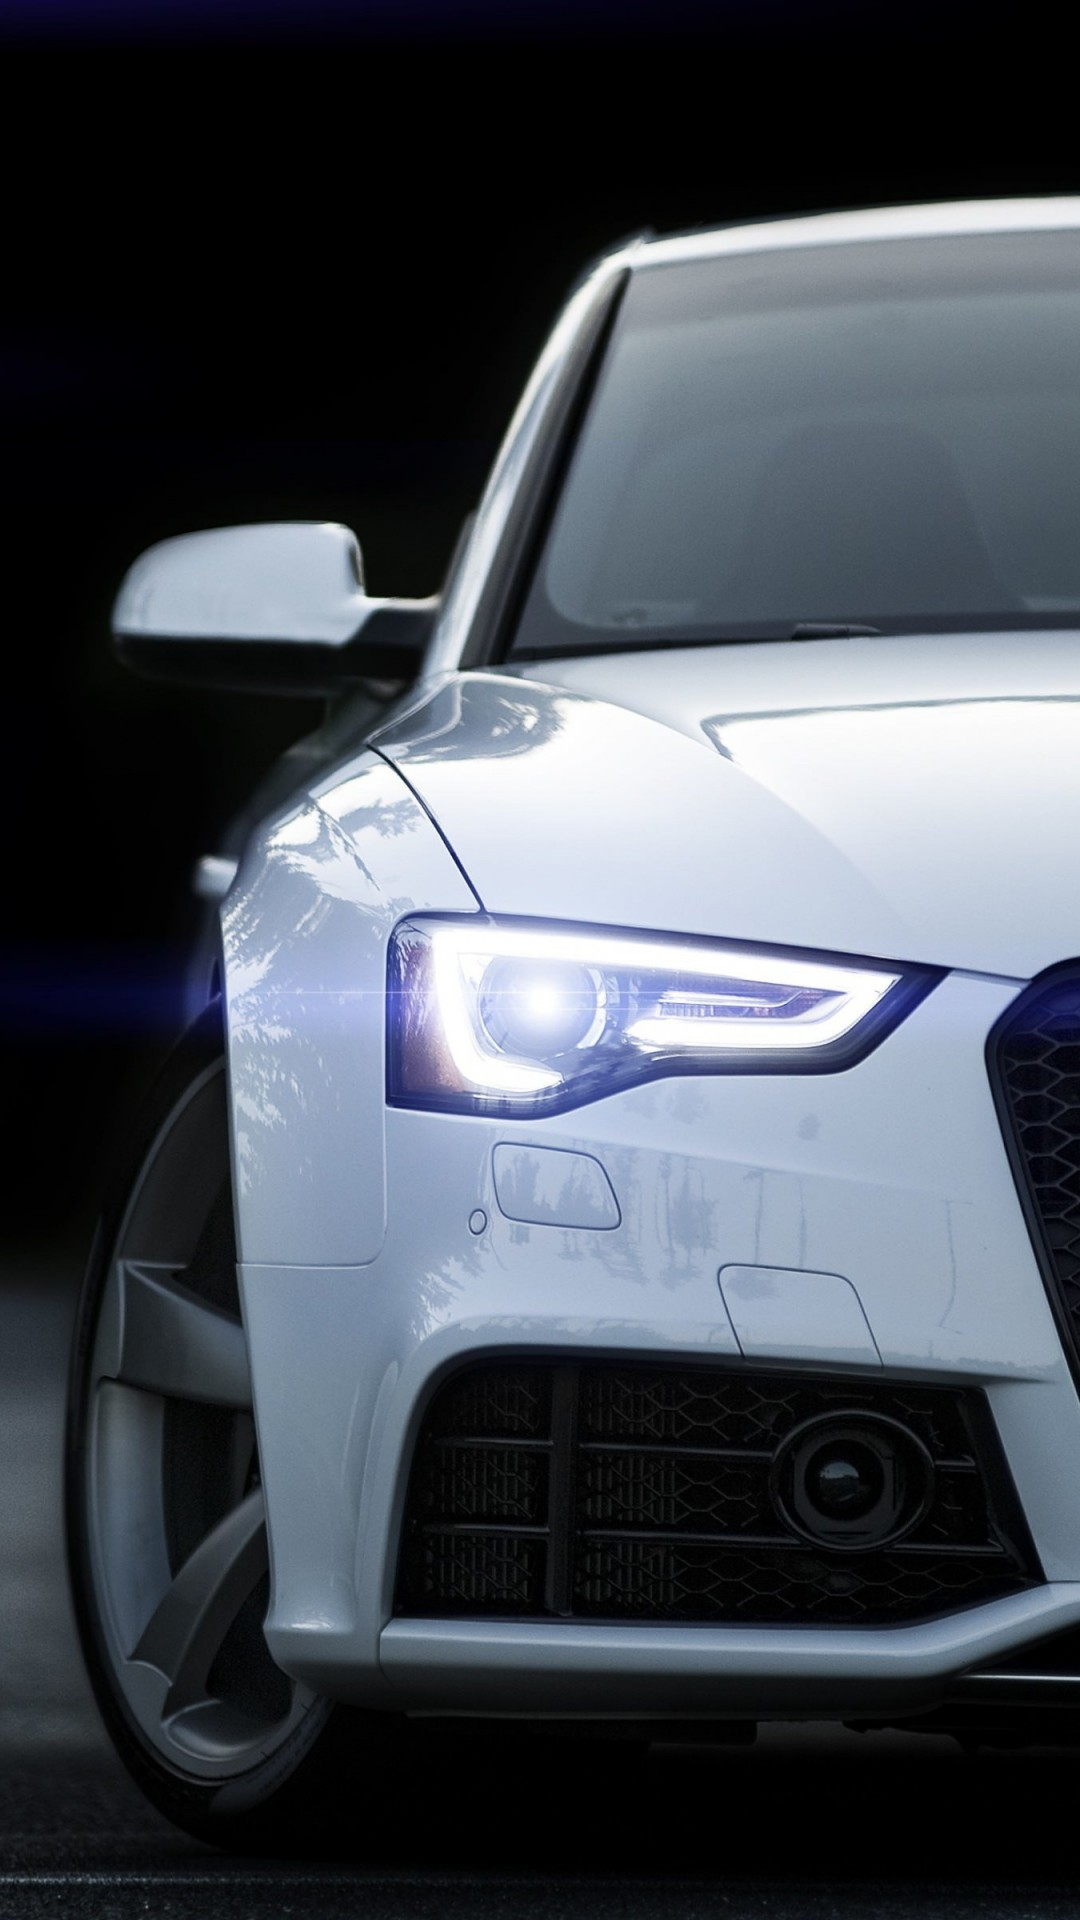 2015 Audi RS 5 Coupe Wallpaper for Google Nexus 5